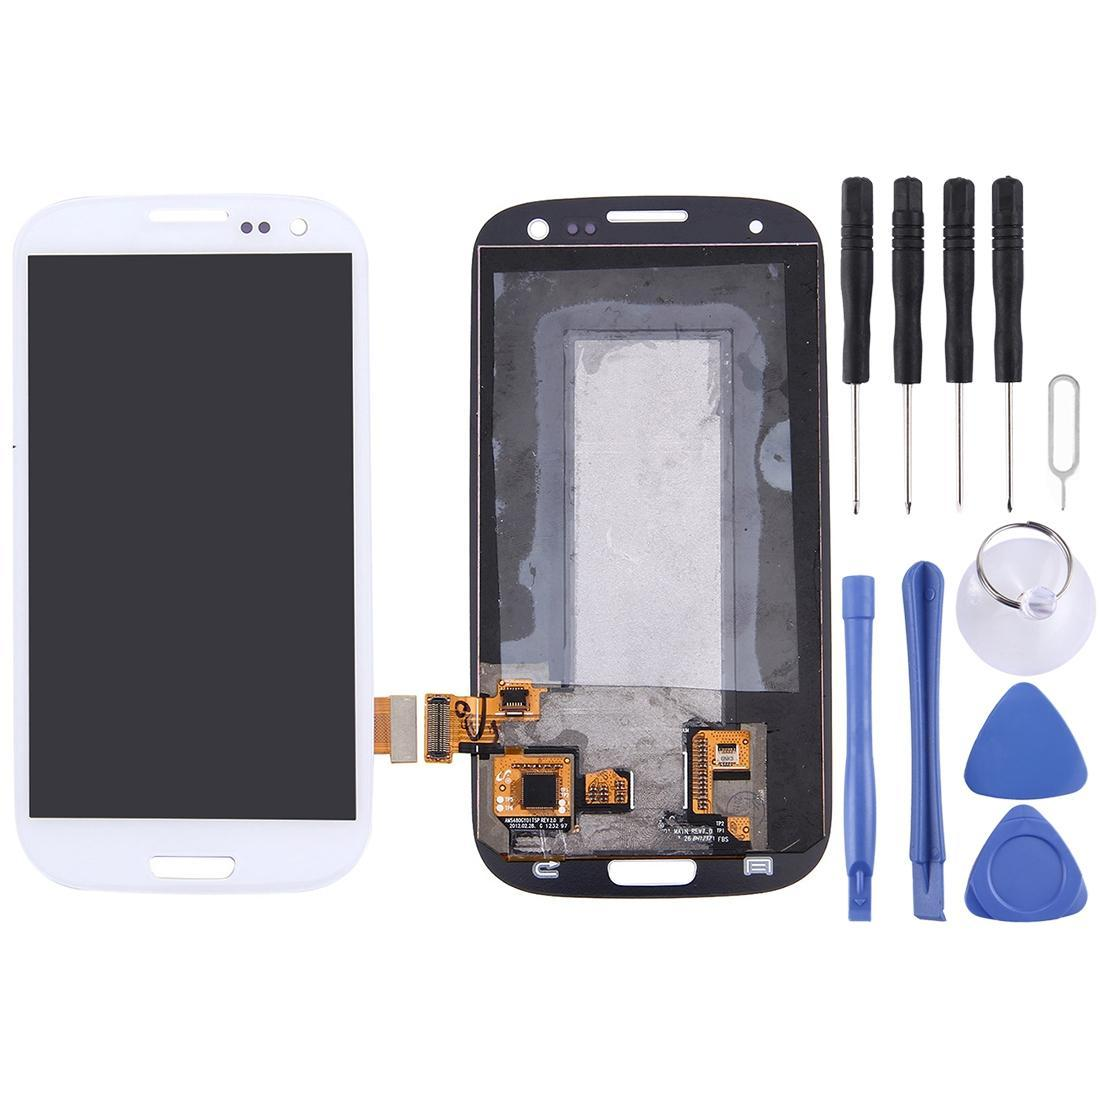 LCD original afficheur tactile pour Galaxy SIII i9300